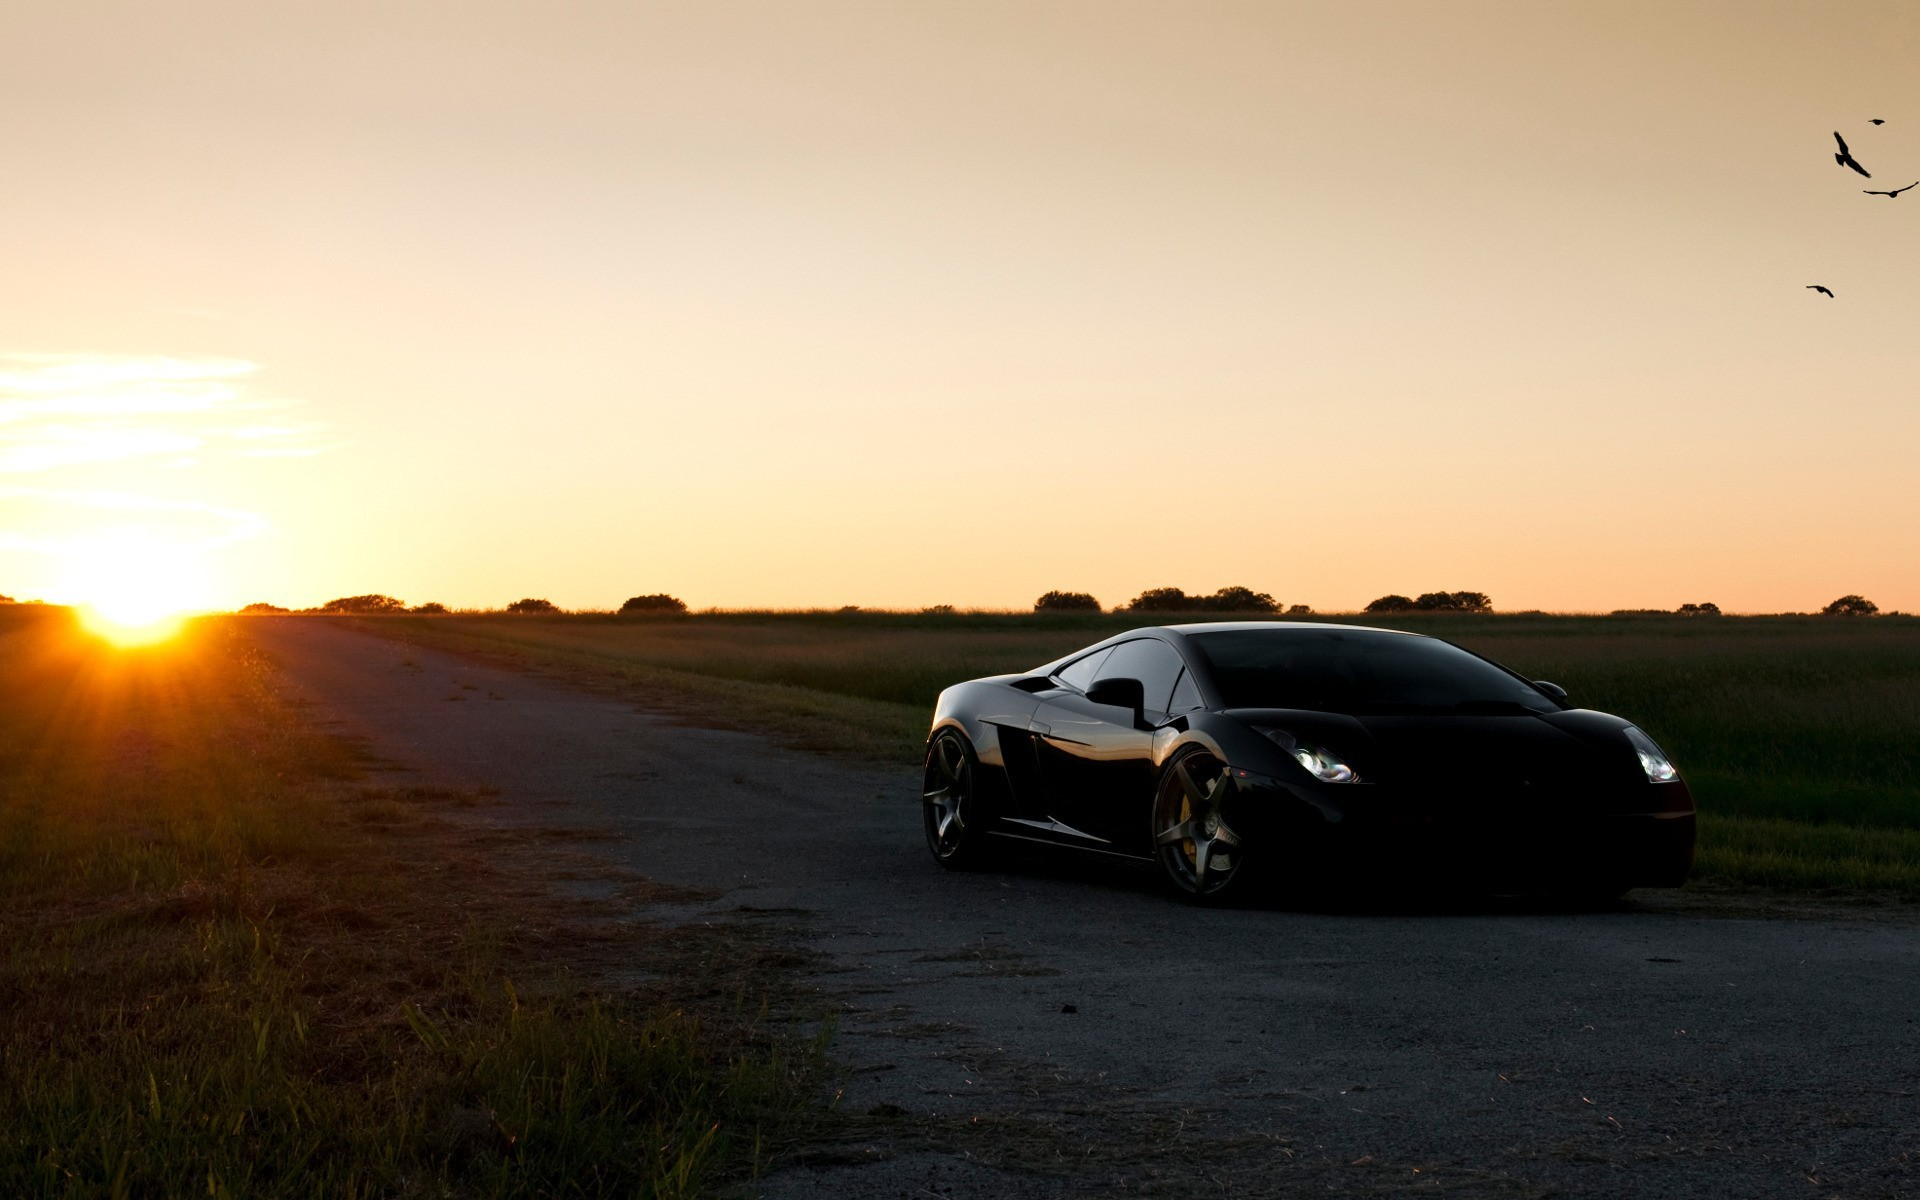 black cars Lamborghini lamborghini HD Wallpaper